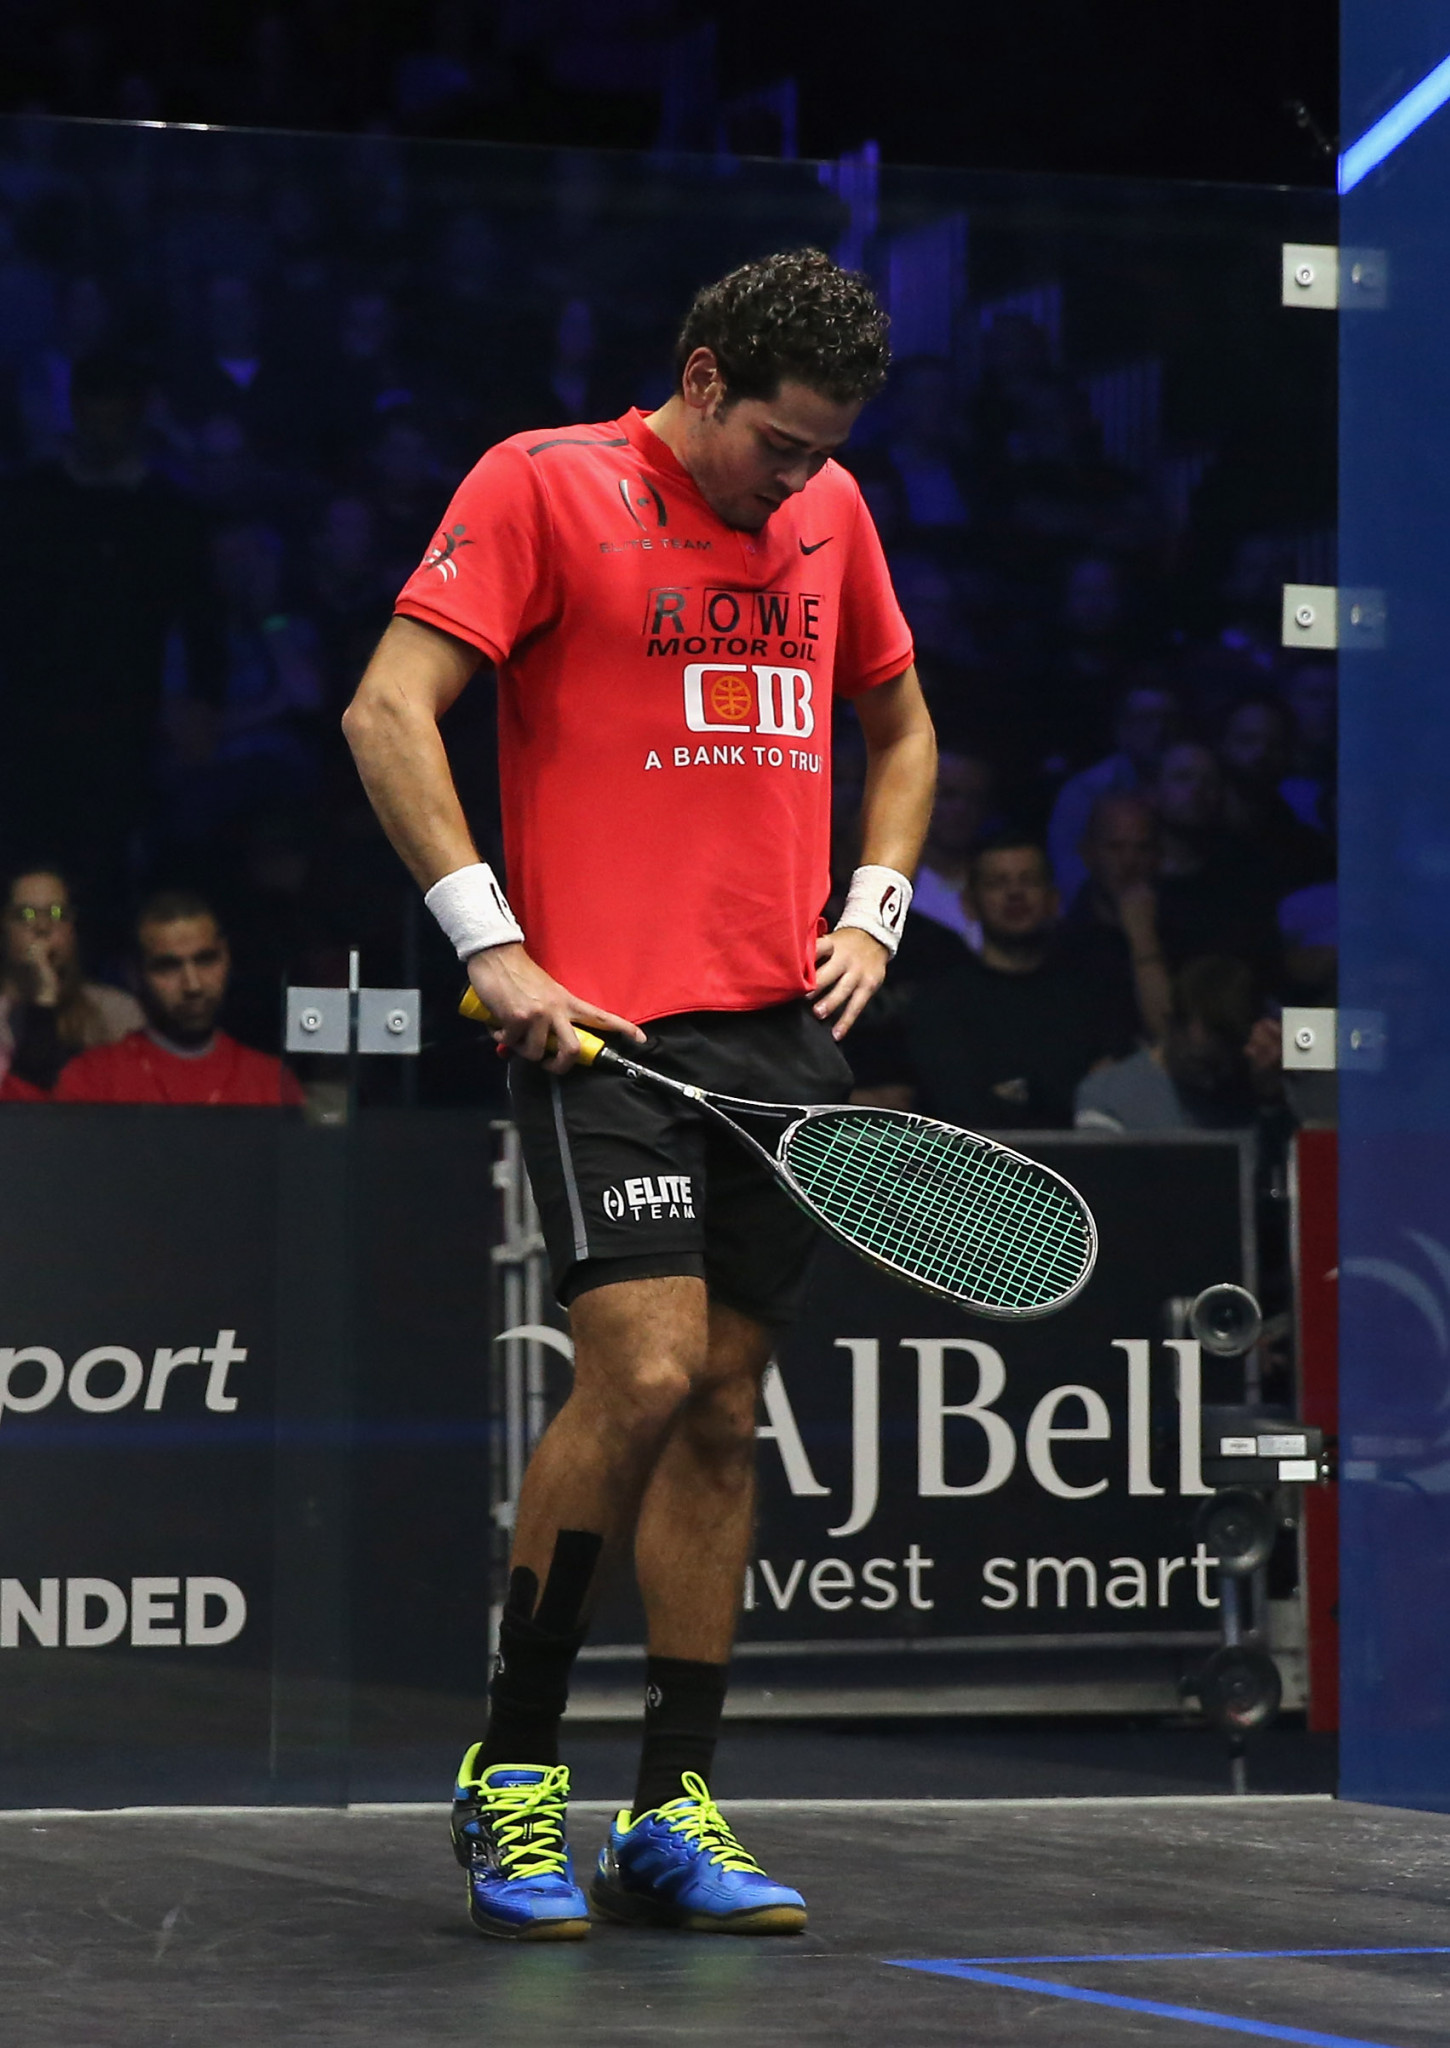 Karim Abdel Gawad has been knocked out of the 2019 World Squash Championships in the first round ©Getty Images